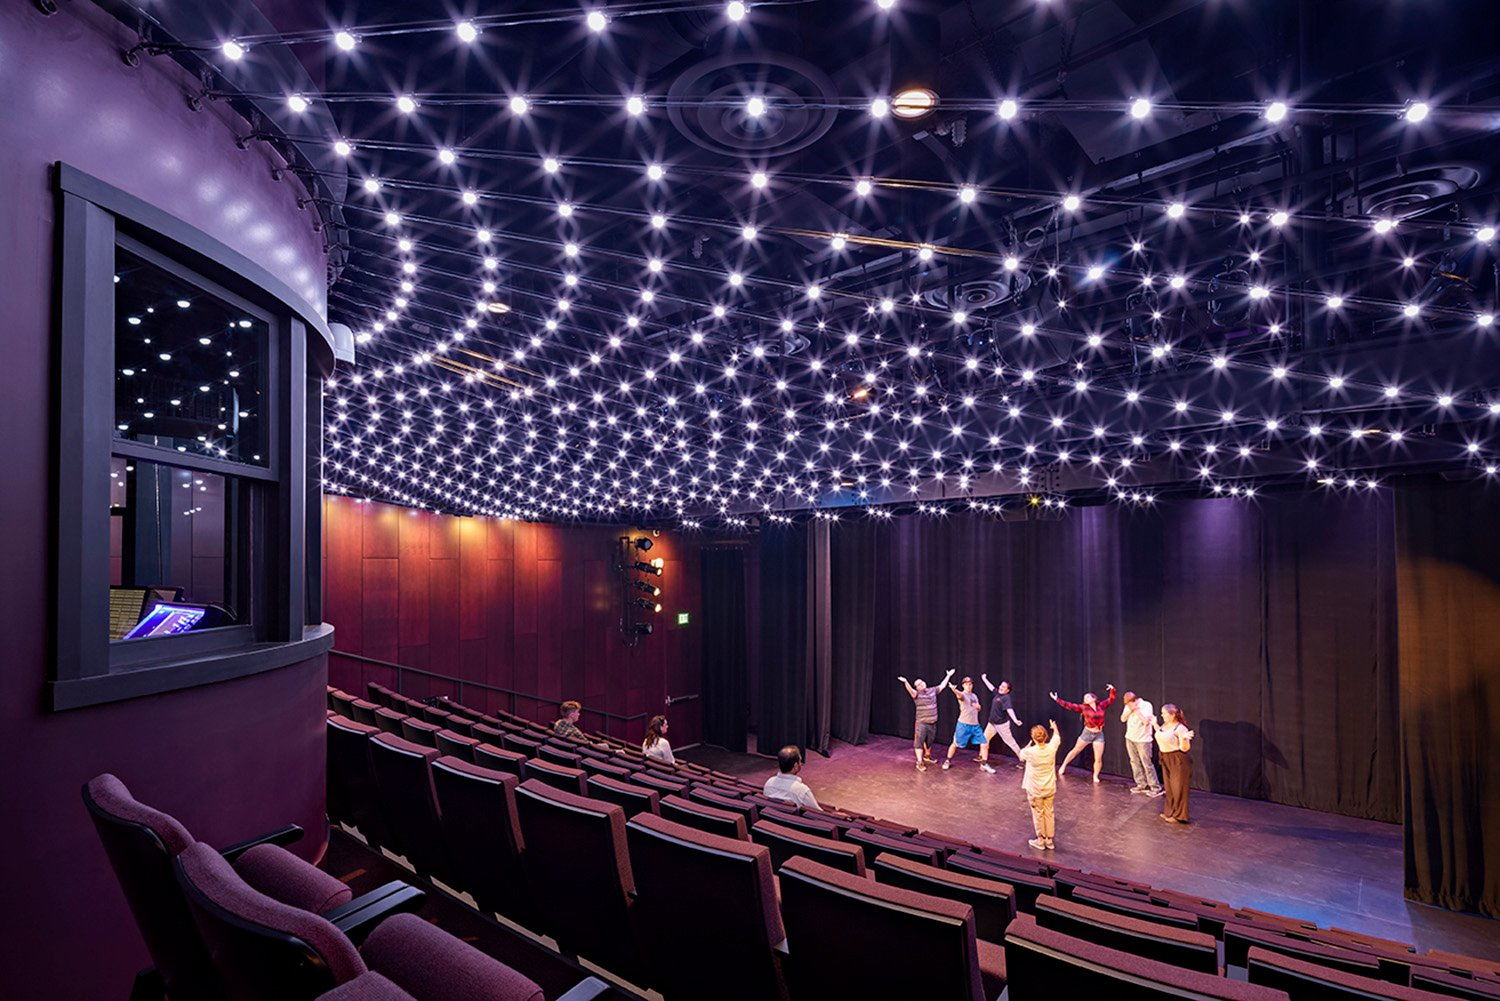 New 177-seat theater includes individually addressable color changing light nodes with video mapping capability to transform the house lighting into a cutting edge theatrical lighting element Robert Benson